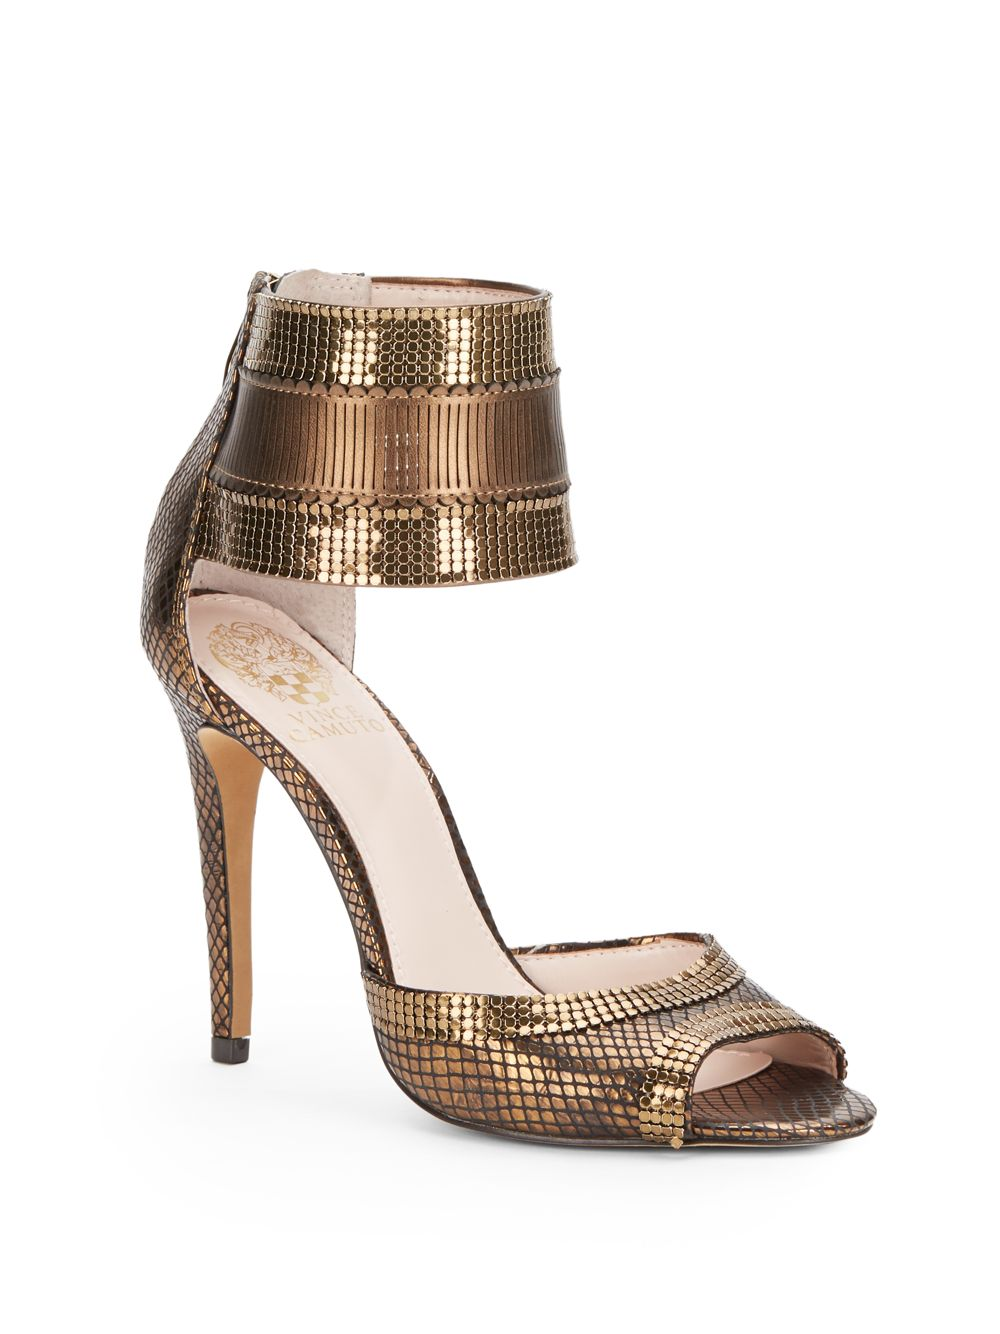 Lyst Vince Camuto Latese Metallic Leather Sandals In